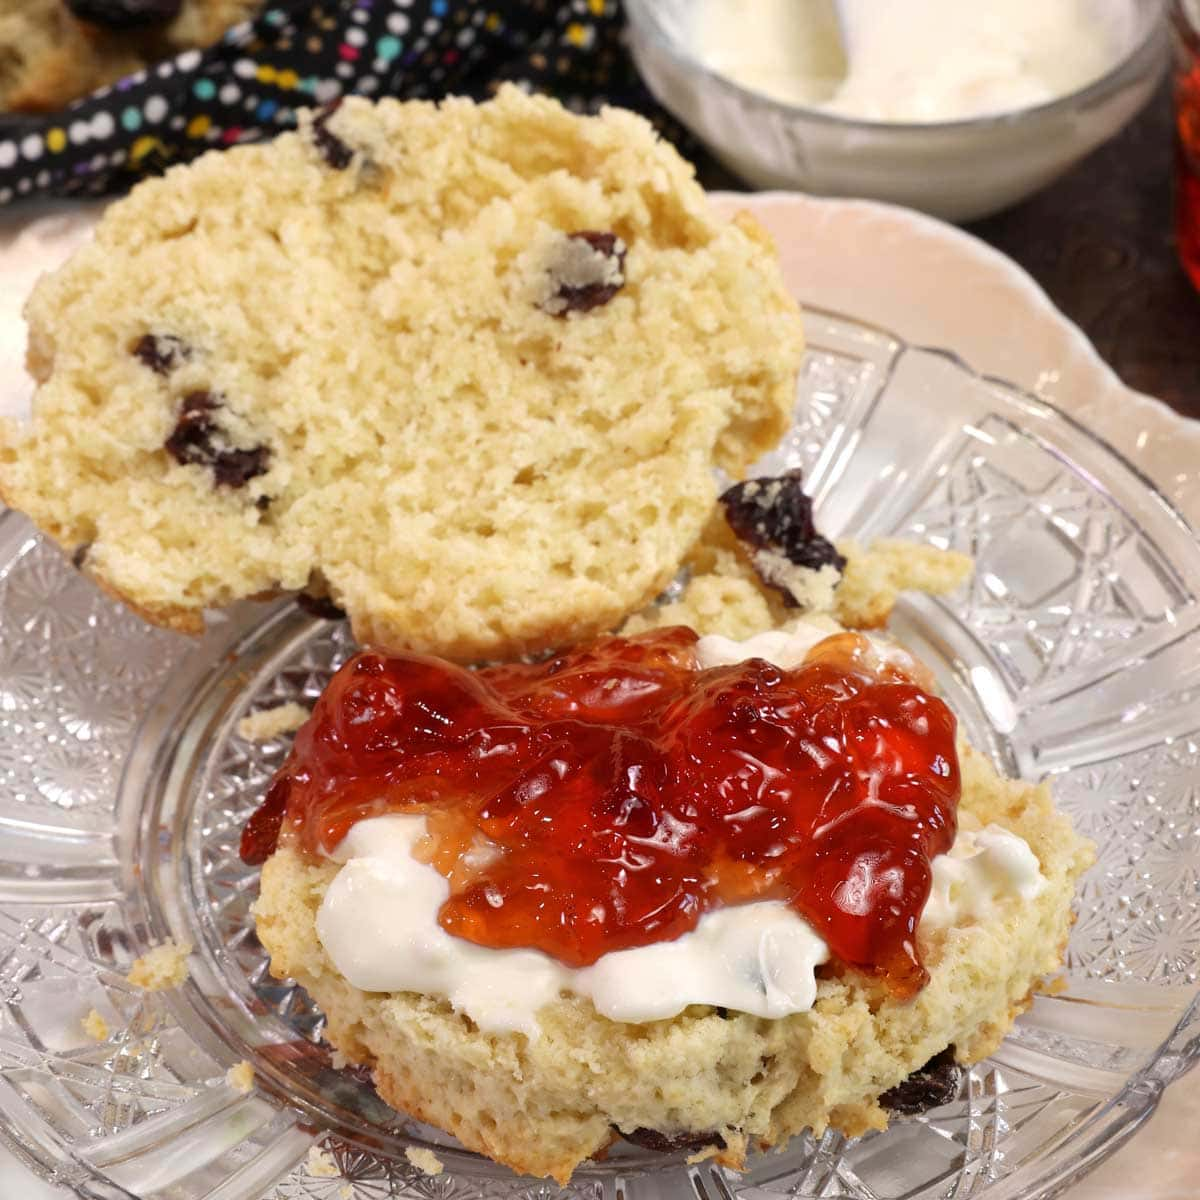 a scone topped with clotted cream and jam